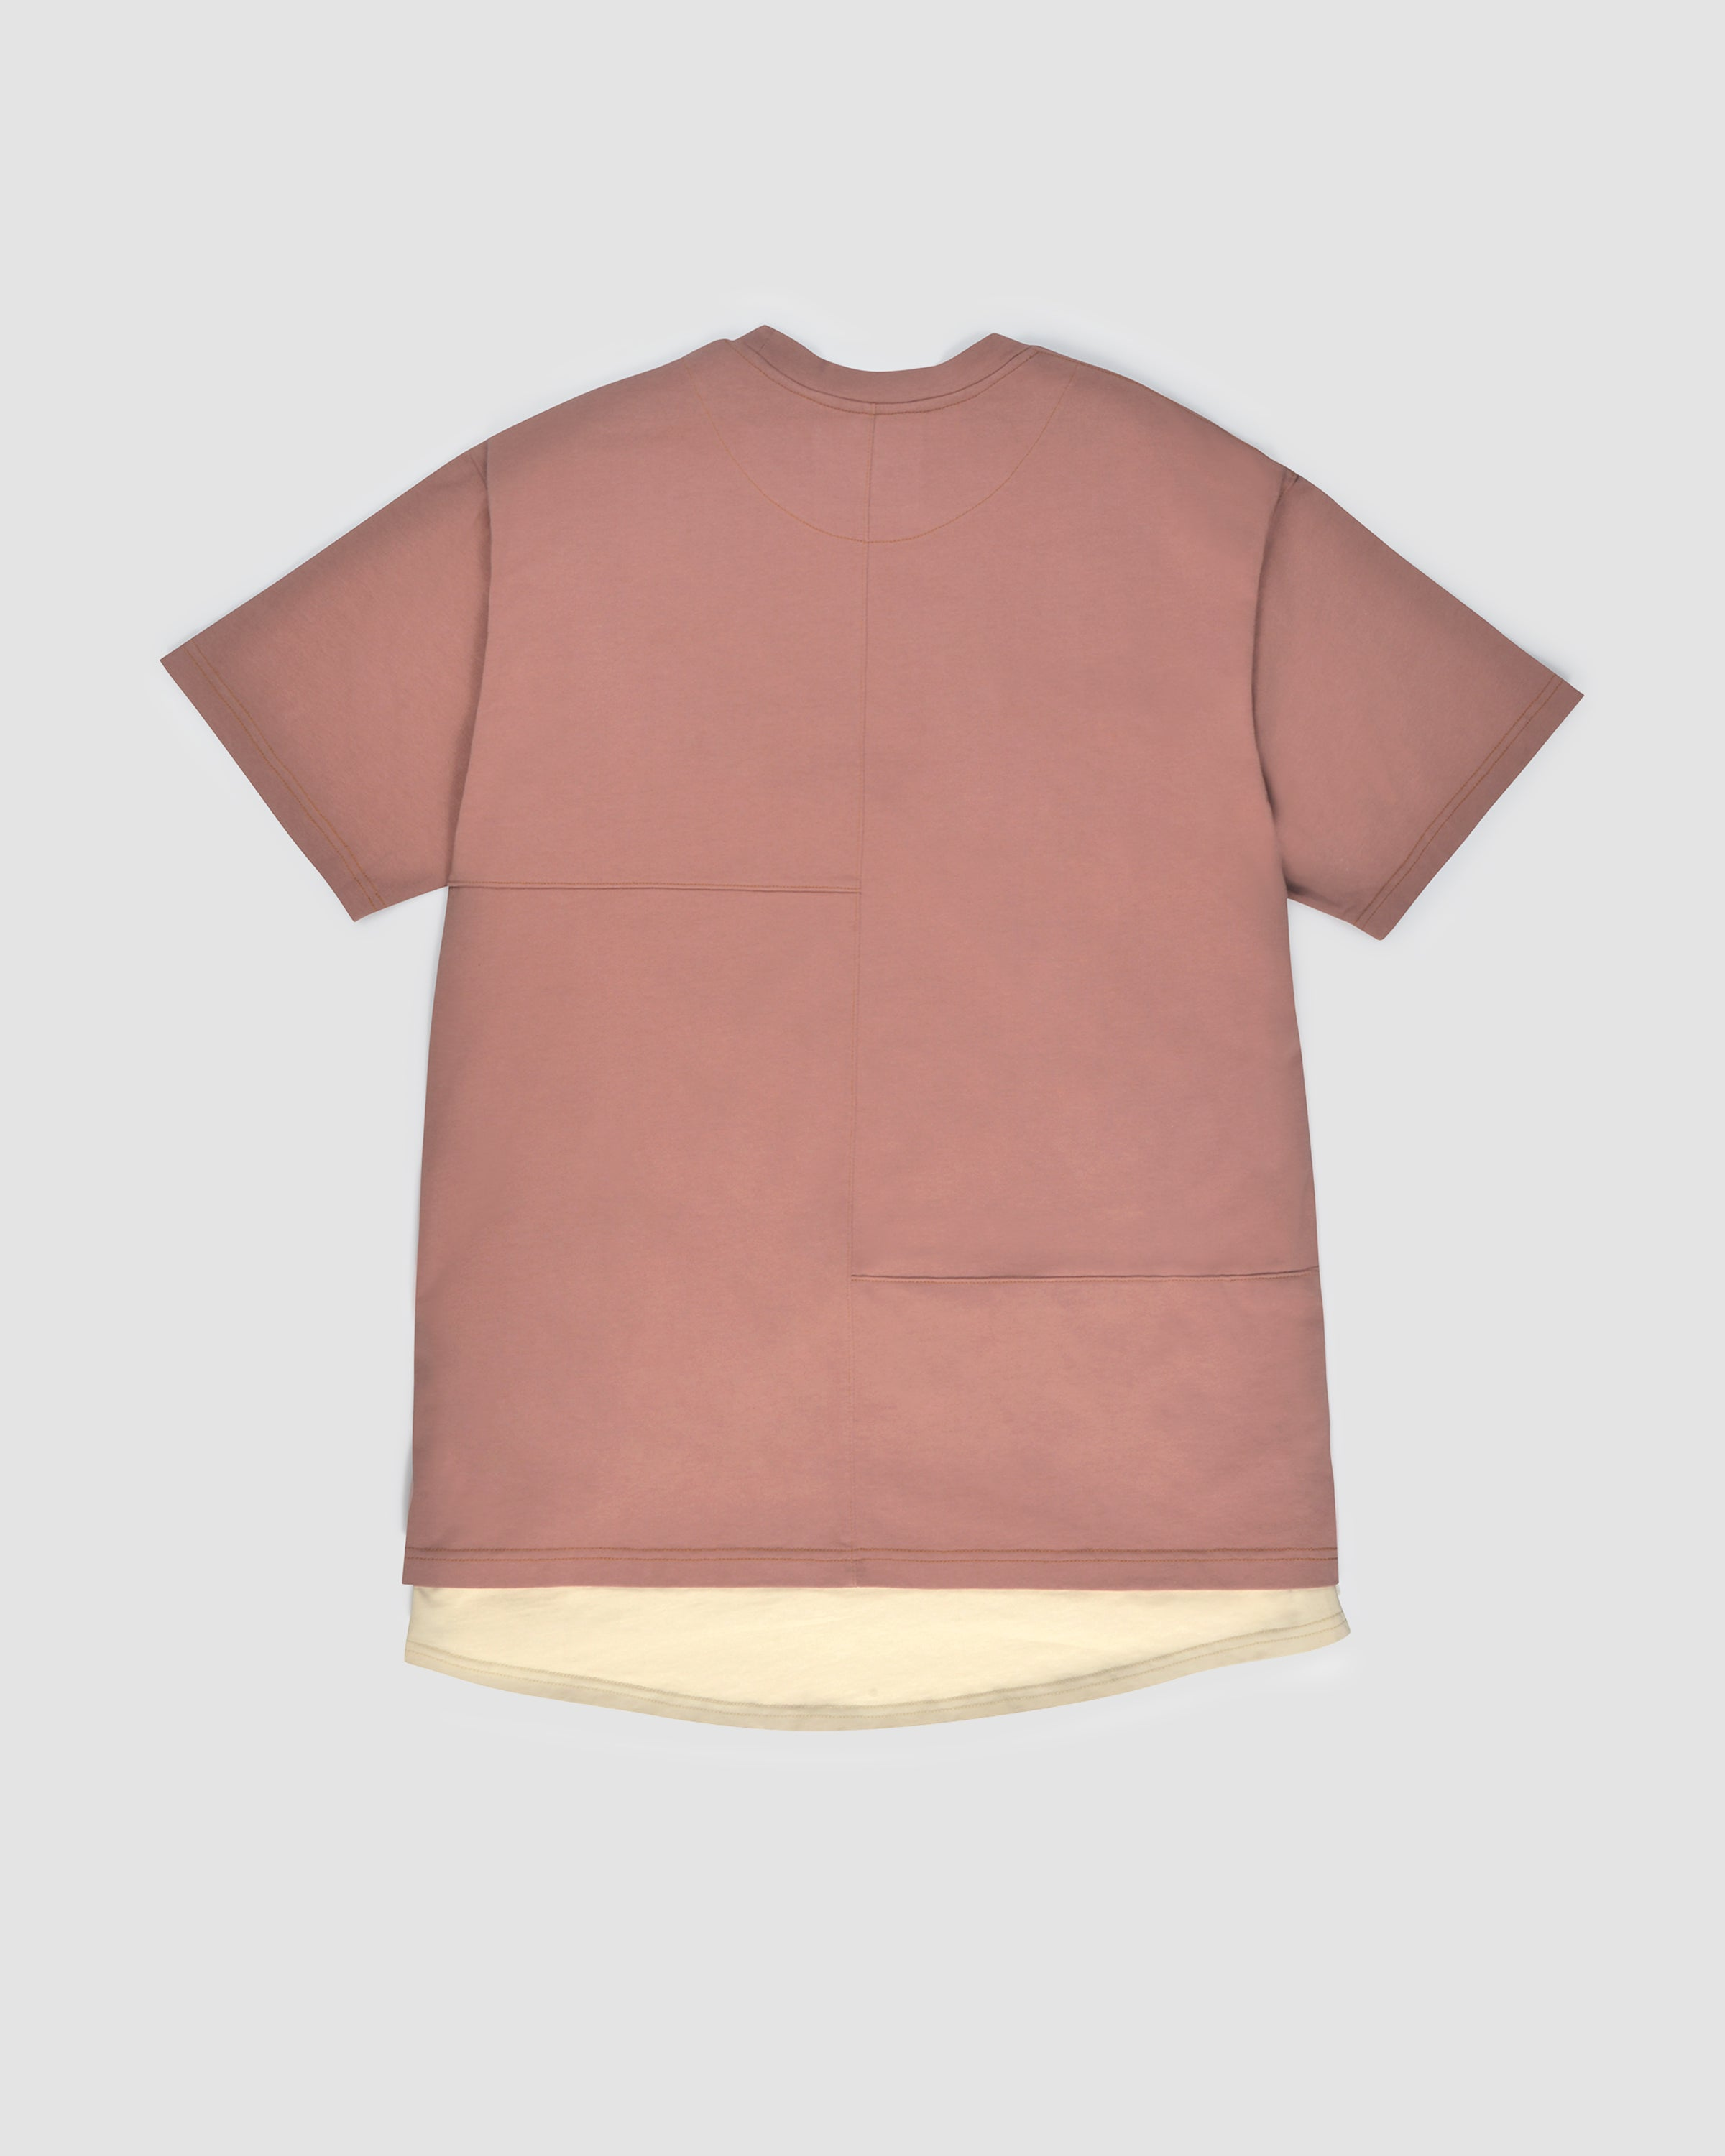 Layers Patch Tee - Rose